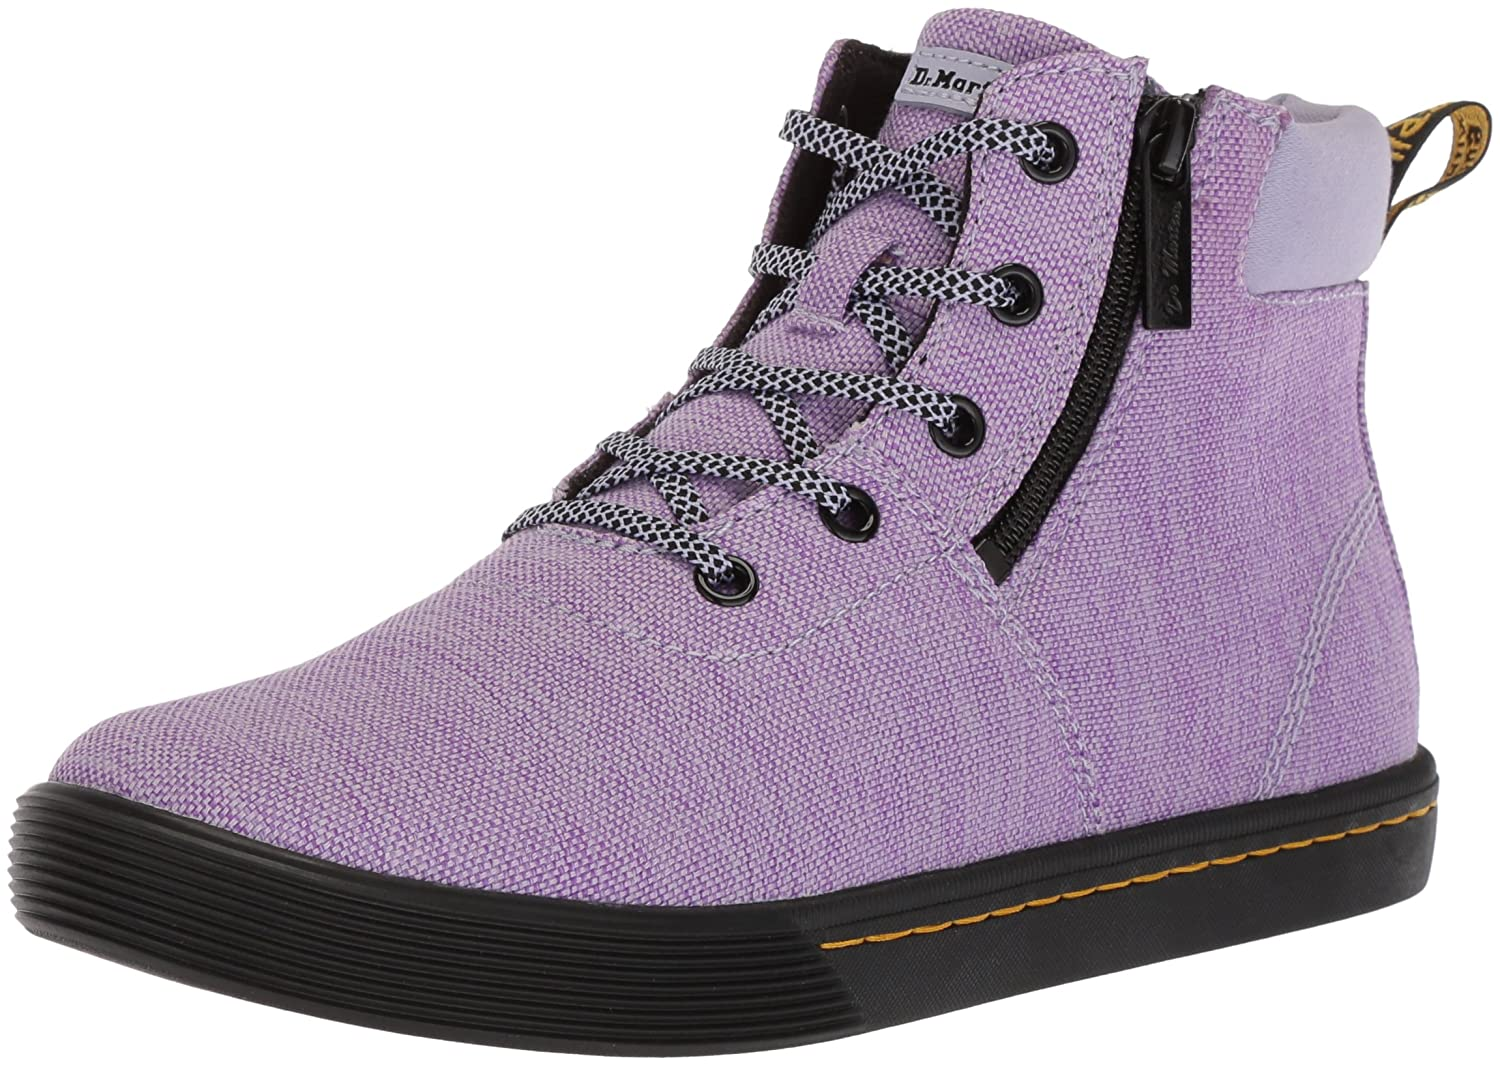 Dr. Martens Women's Maegley Fashion Boot B071GN8MTH 5 Medium UK (7 US)|Purple Heather Woven Textile+fine Canvas